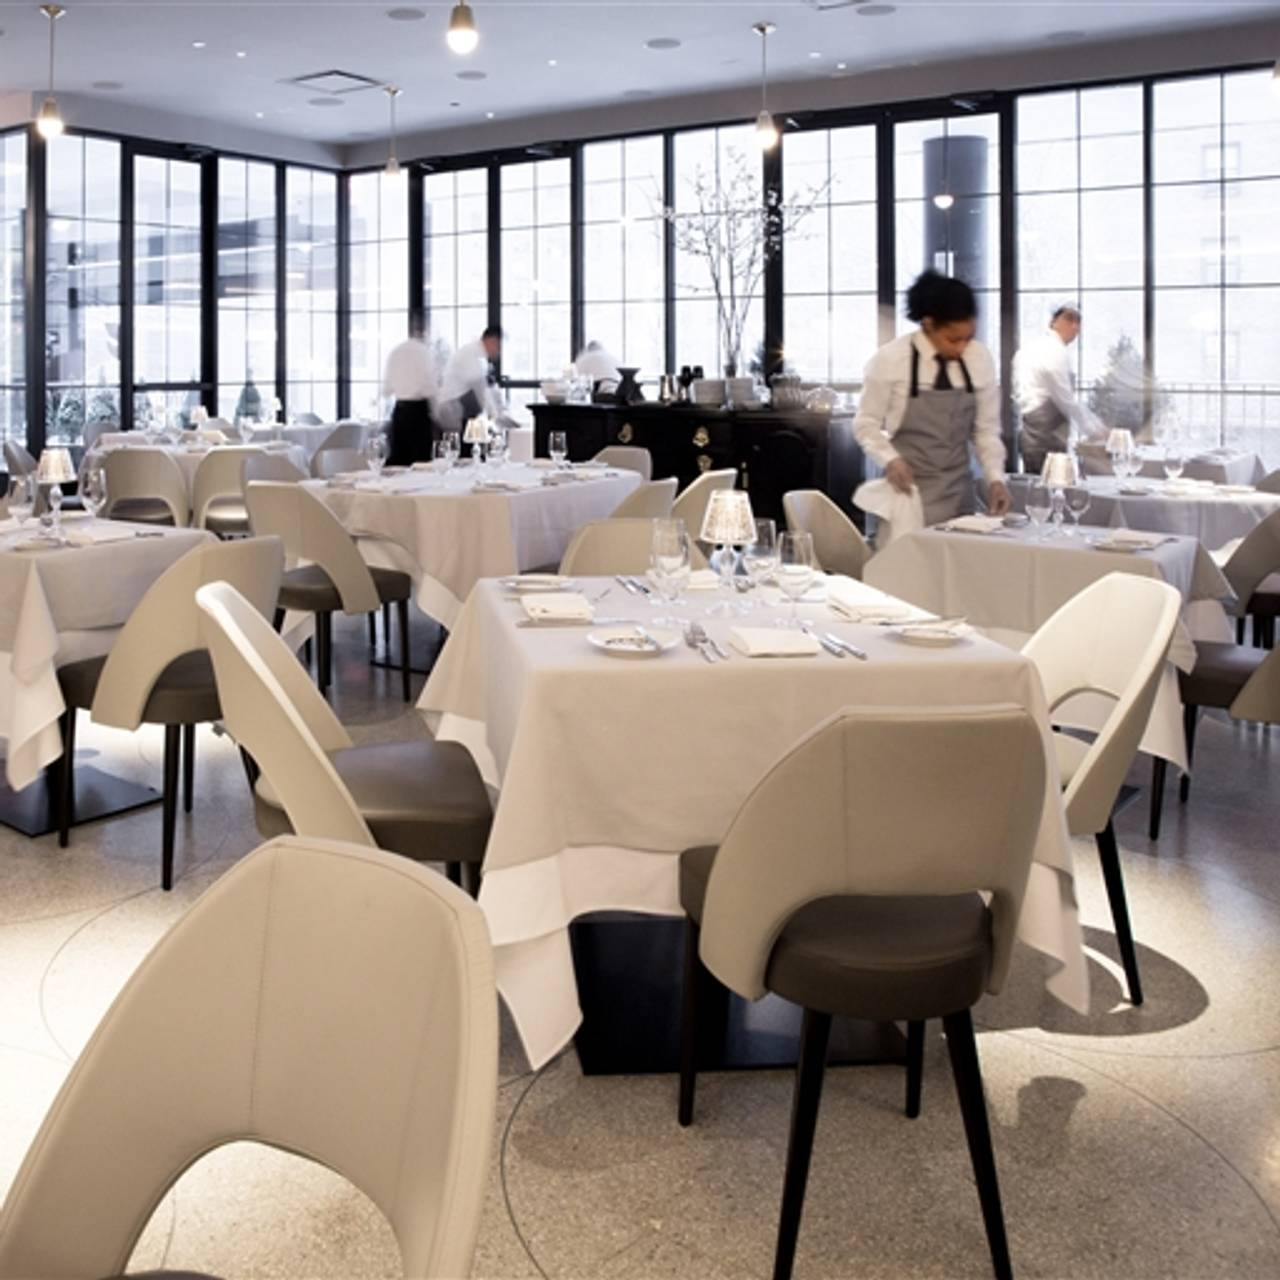 La Sirena The Dining Room Restaurant New York NY OpenTable Awesome The Dining Room